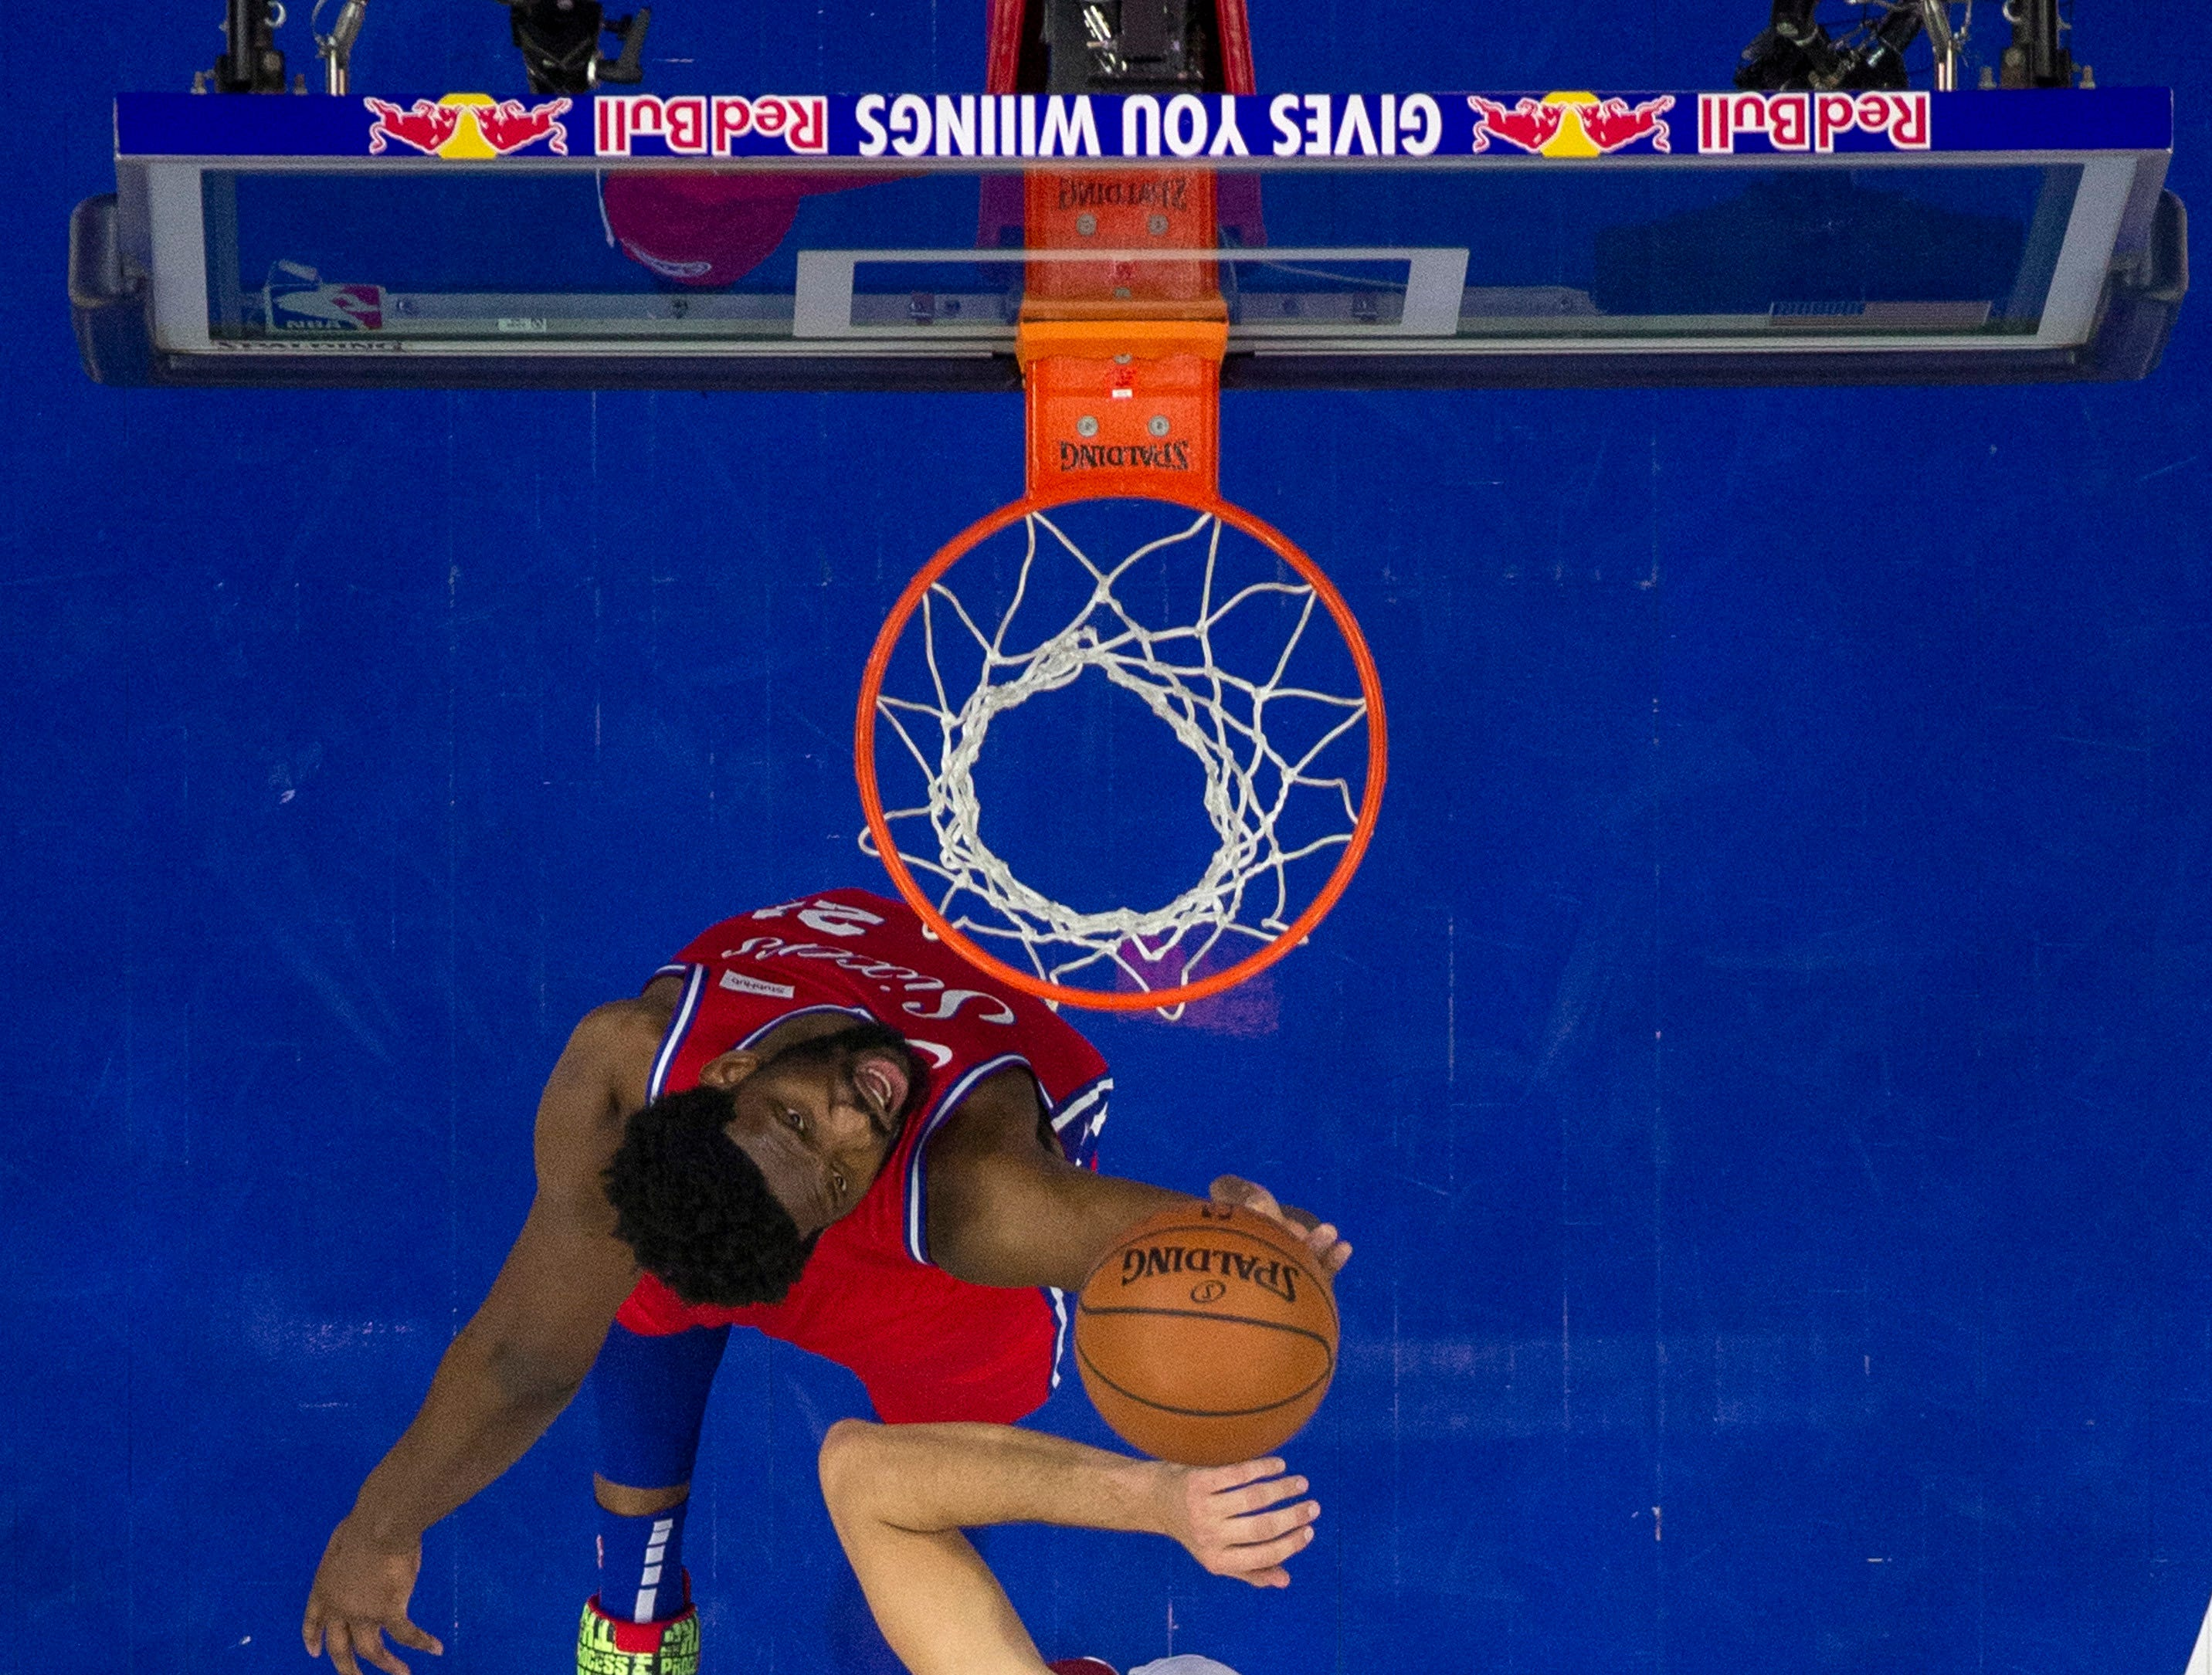 Philadelphia 76ers' Joel Embiid, left, of Cameroon, shoots with Cleveland Cavaliers' Ante Zizic, right, of Croatia, defending during the second half of an NBA basketball game, Tuesday, March 12, 2019, in Philadelphia. The 76ers won 106-99. (AP Photo/Chris Szagola)